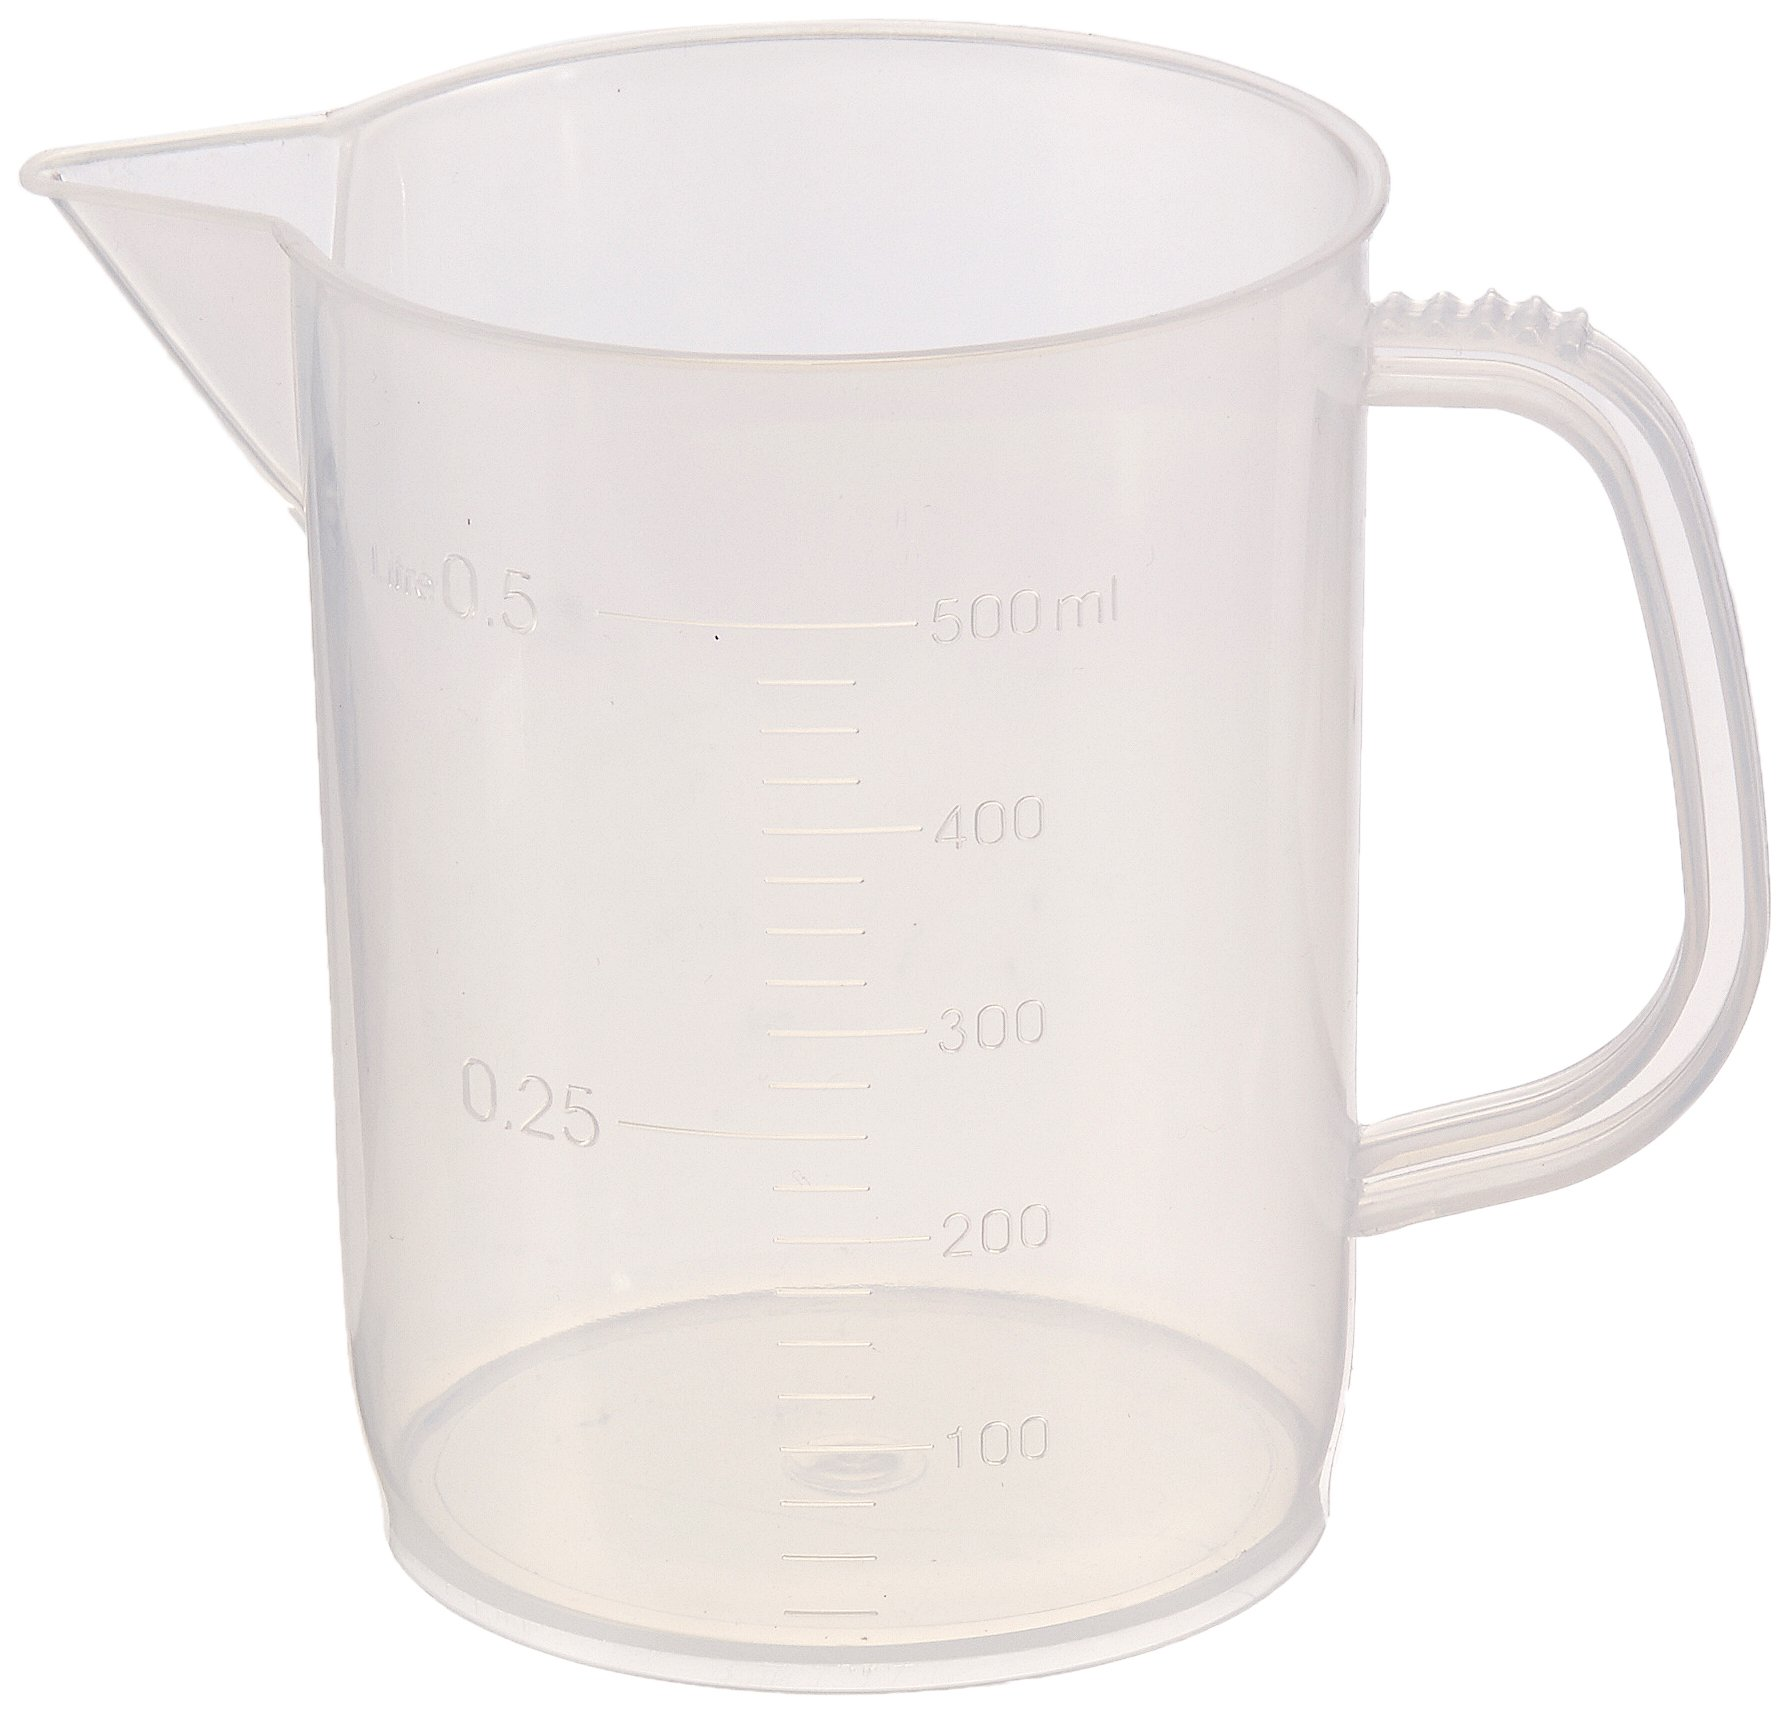 United Scientific 81121 Polypropylene Short Form Pitchers, 500ml Capacity (Pack of 12)